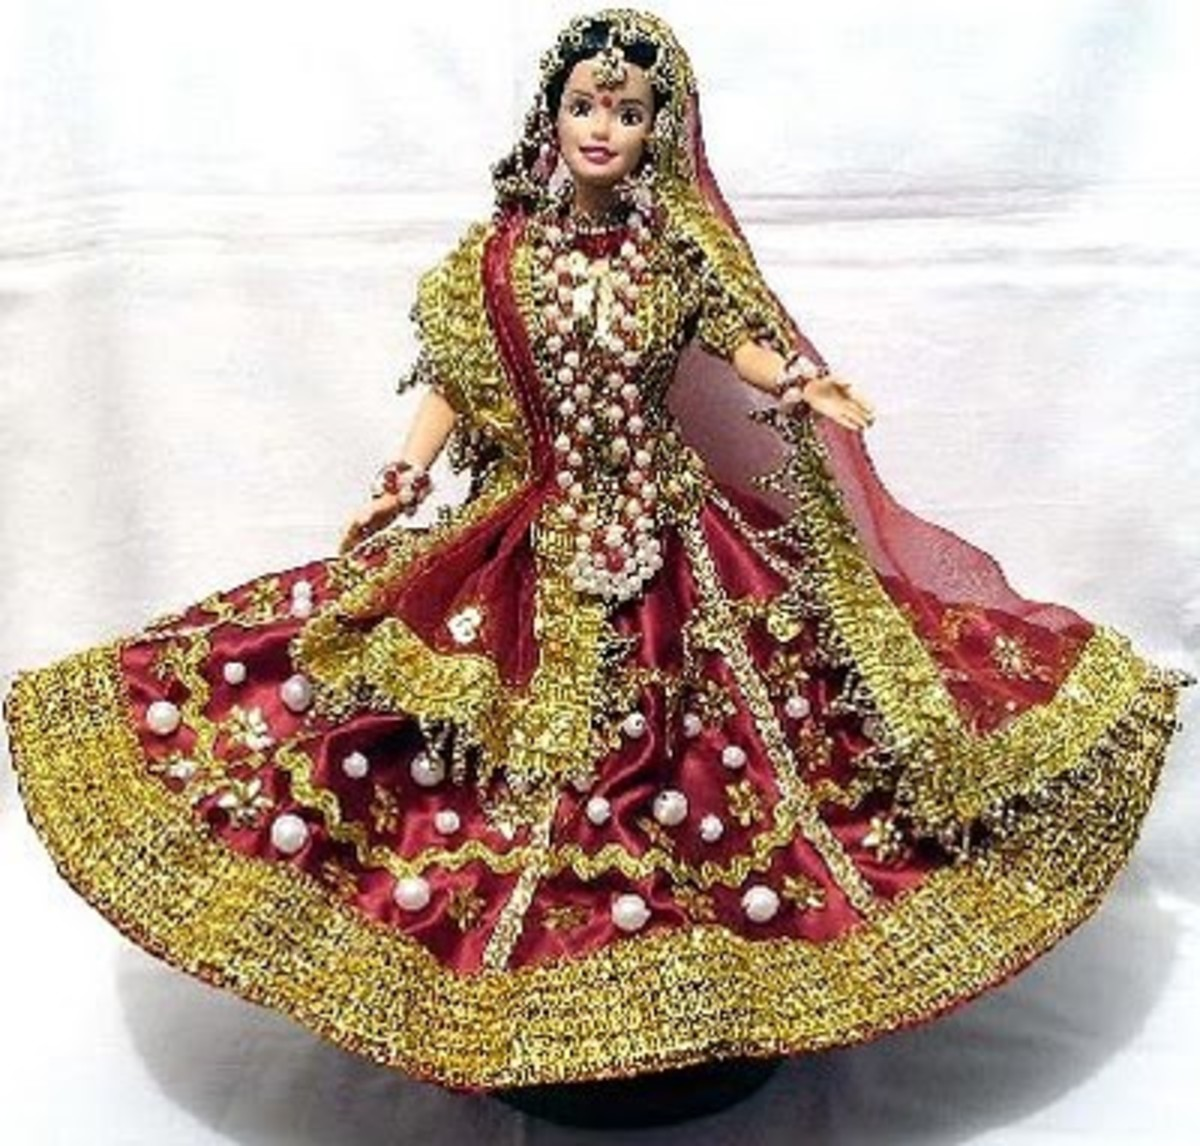 Barbie Doll in Indian Traditional Dress with Gold Veil